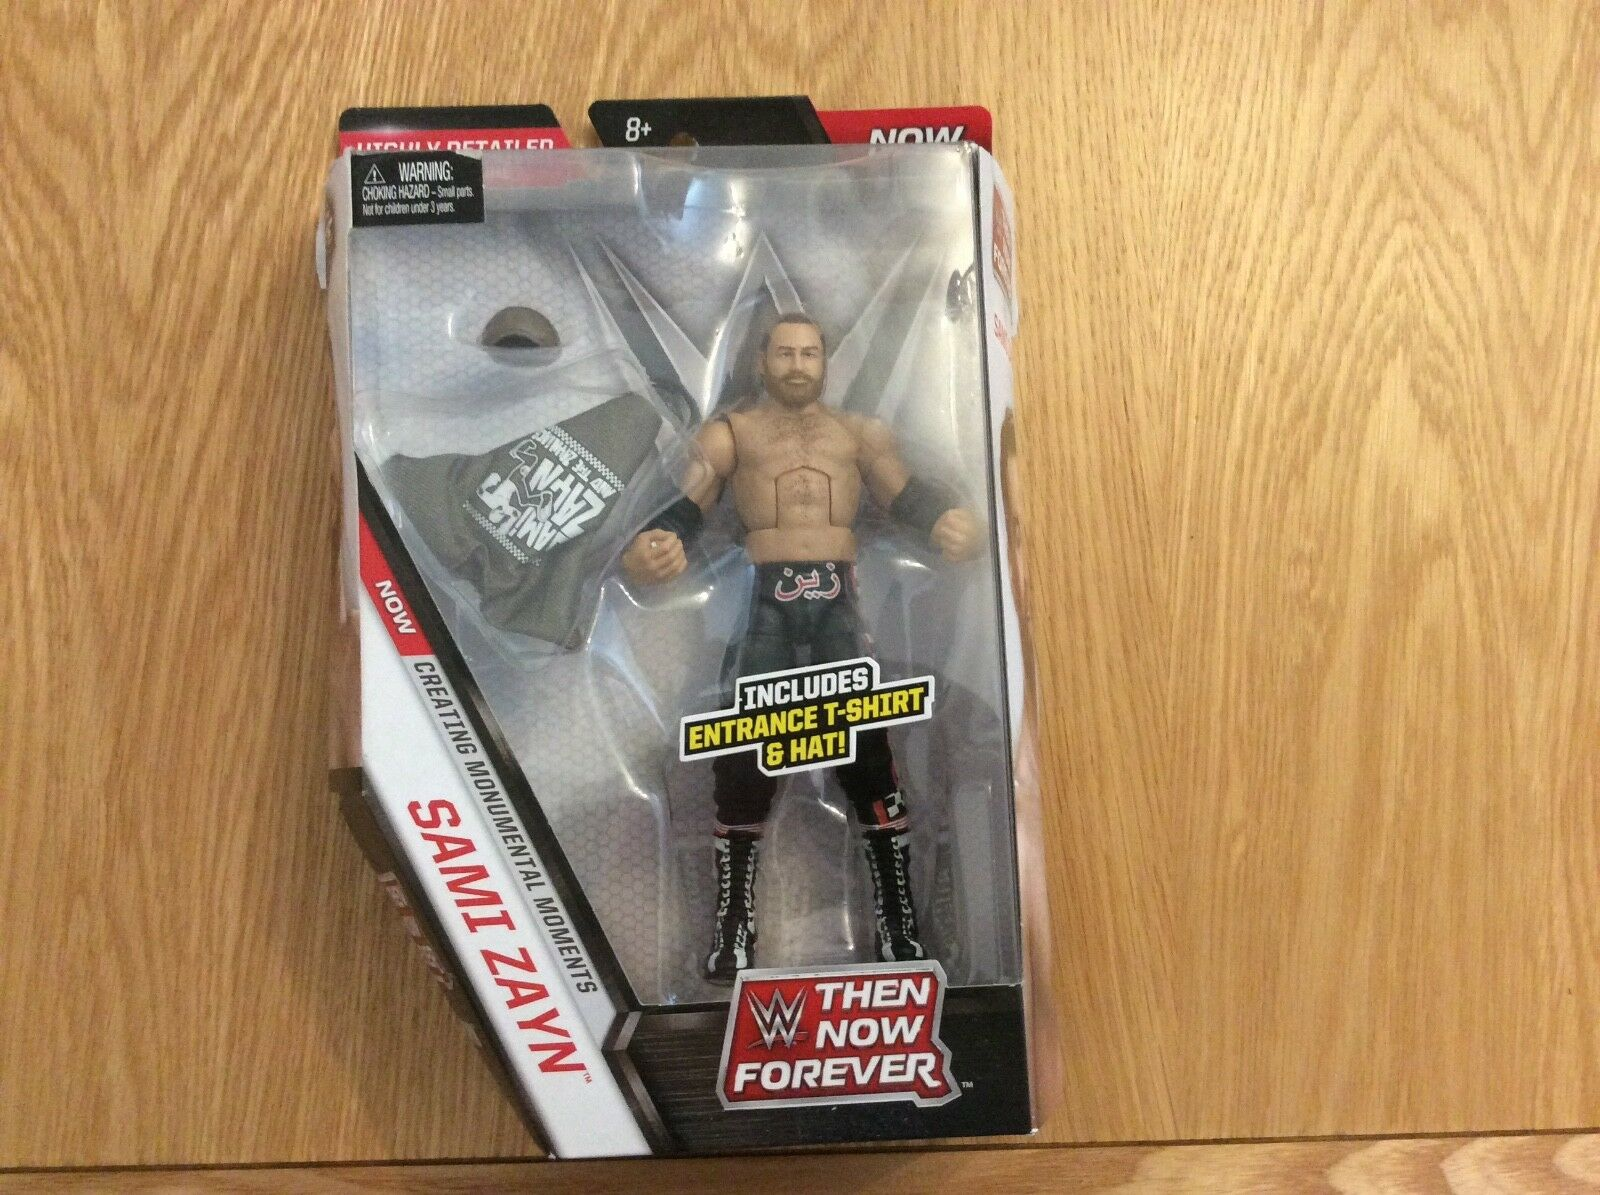 Wwe nxt sami zayn then now forever elite figure rare usa import new and sealed